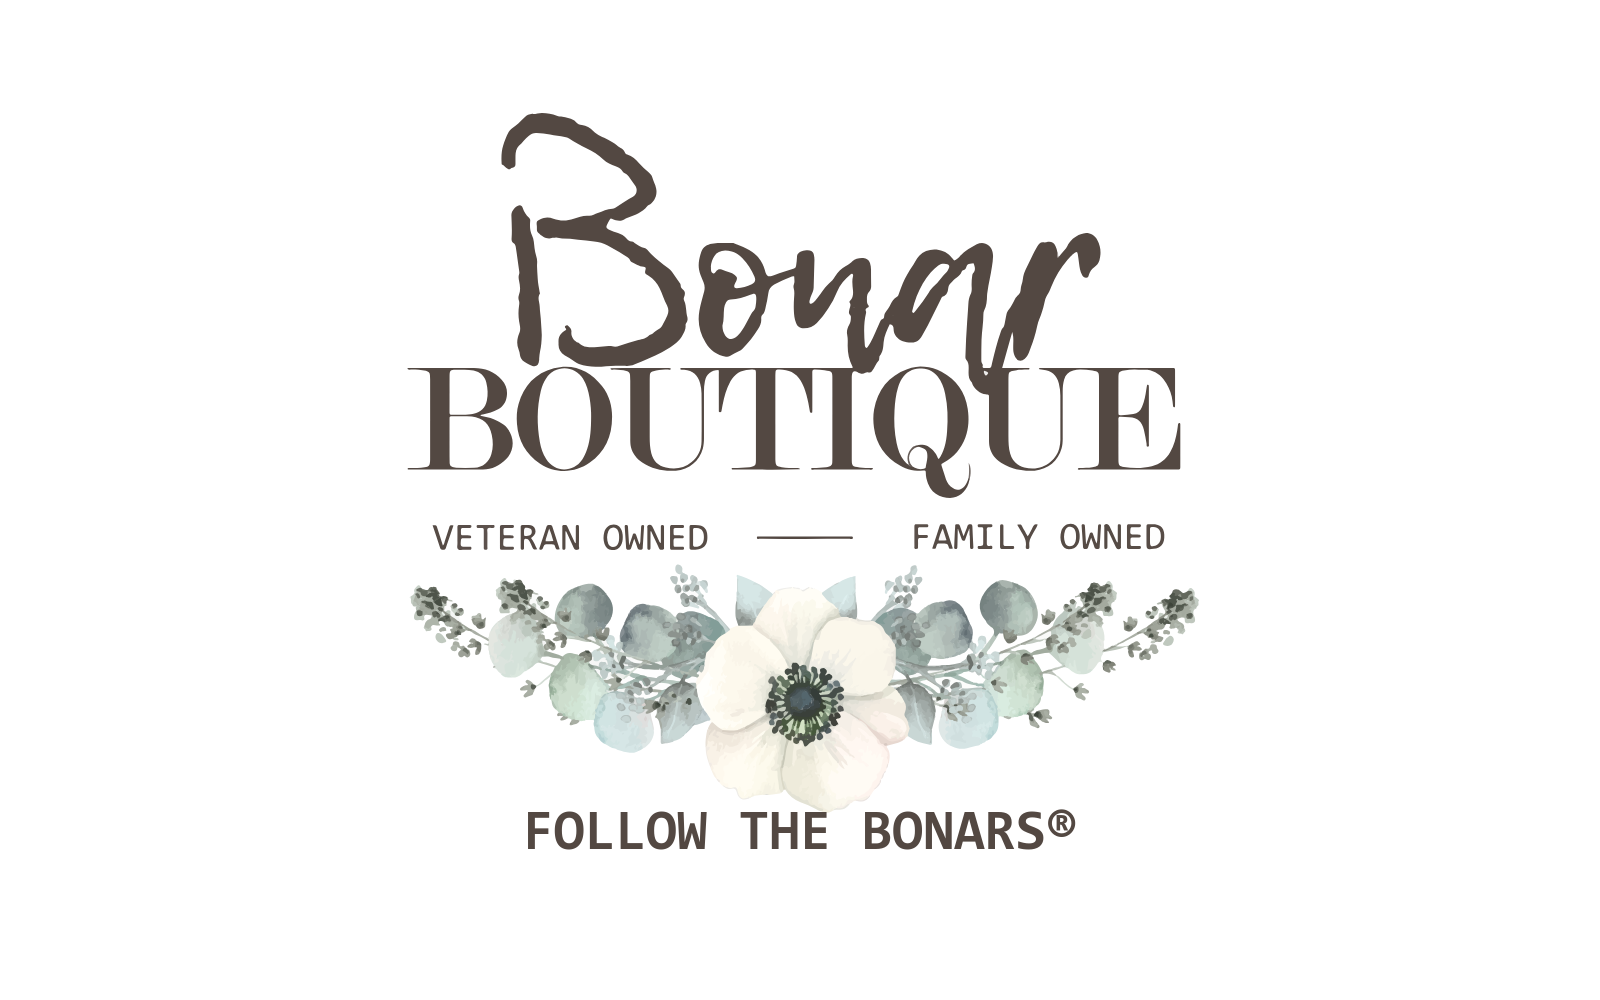 Follow The Bonars